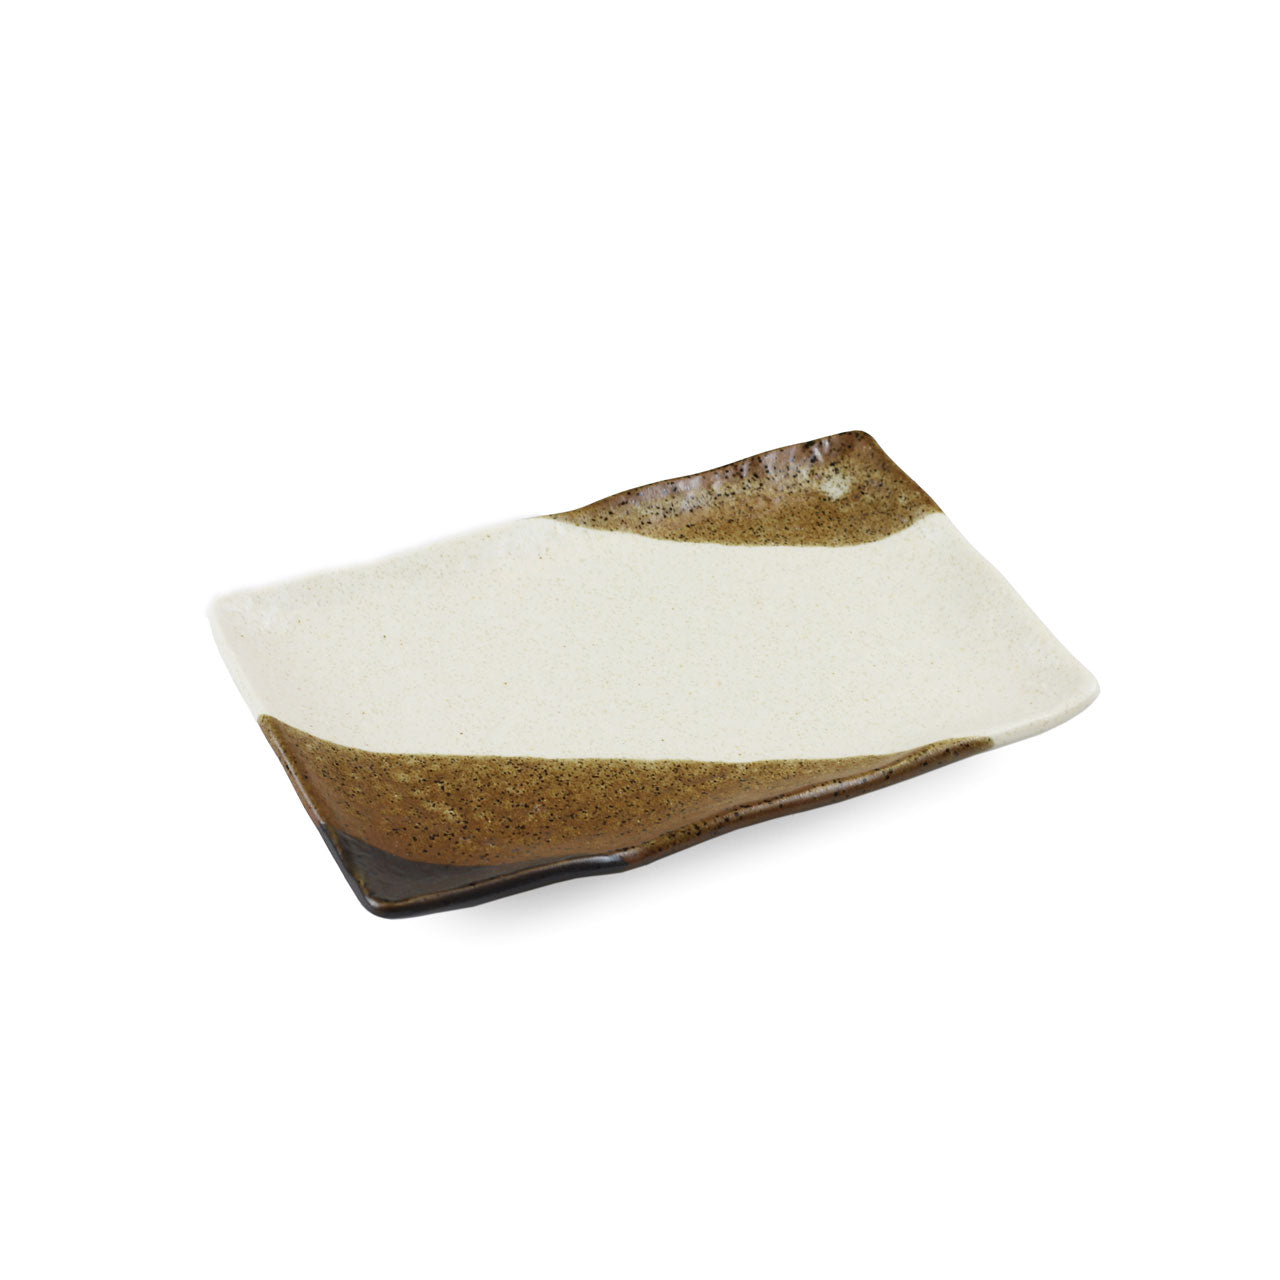 "Shinsaiun Ivory x Brown Matte Rectangular Plate 6.6"" x 4.4"""